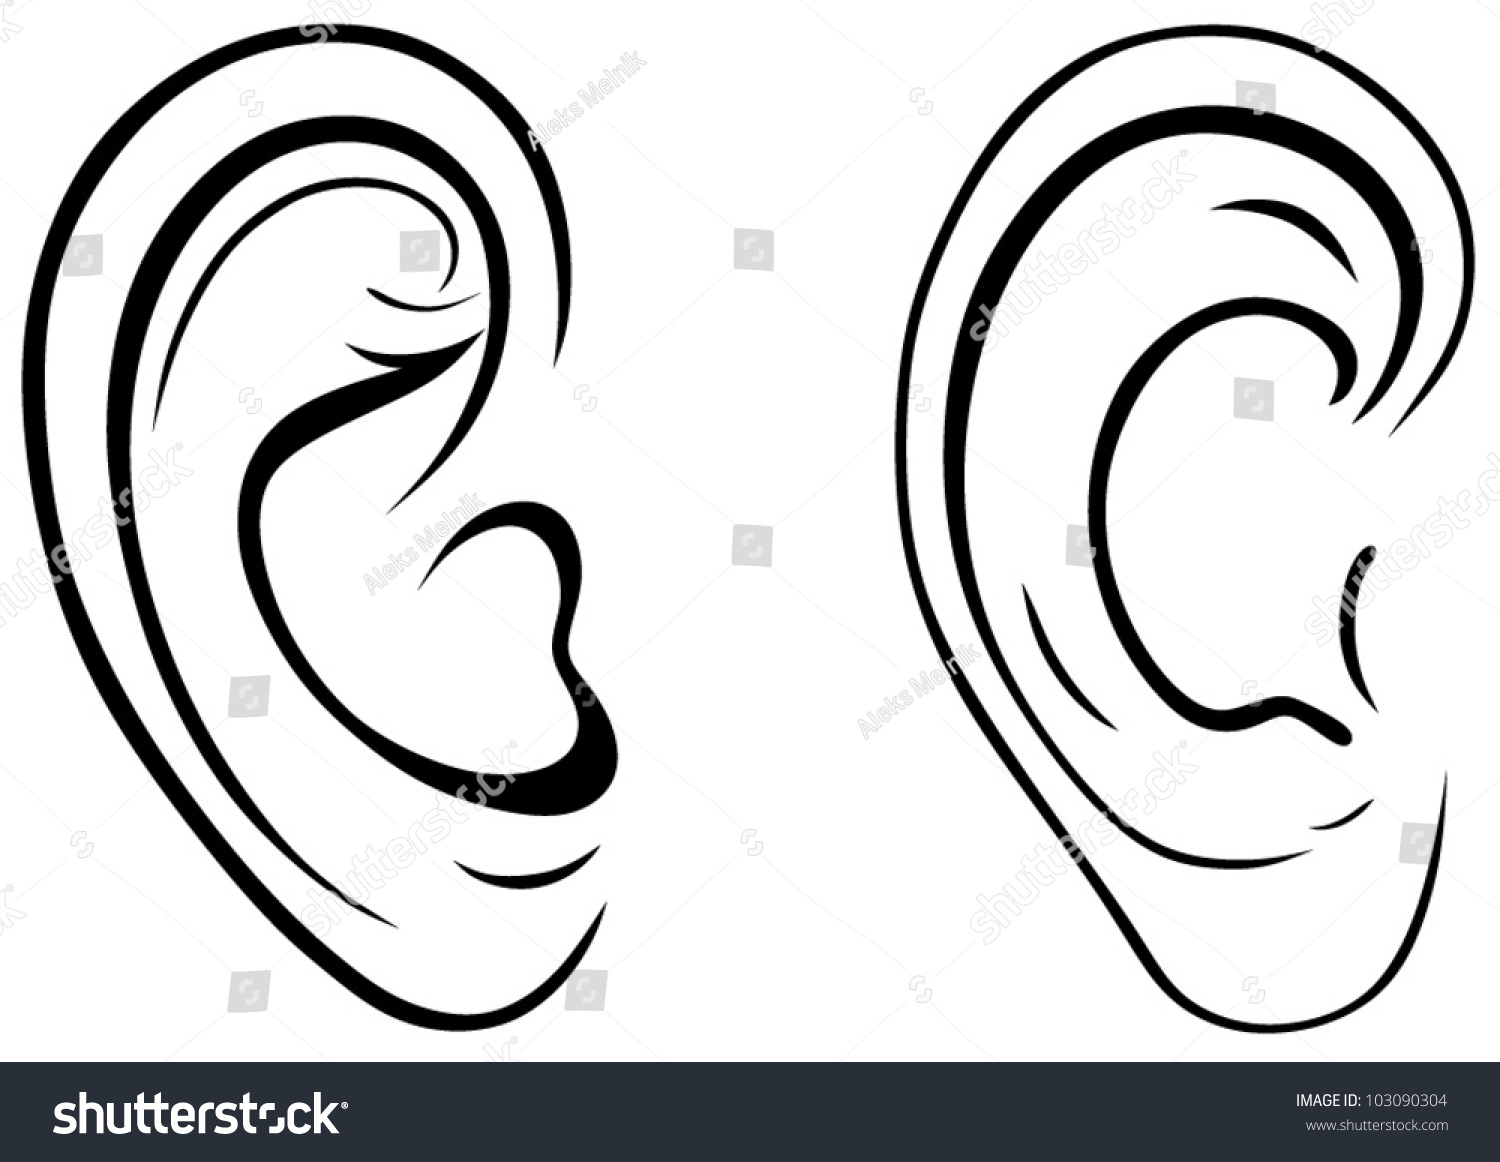 It's just a photo of Mesmerizing Ear Drawing Simple